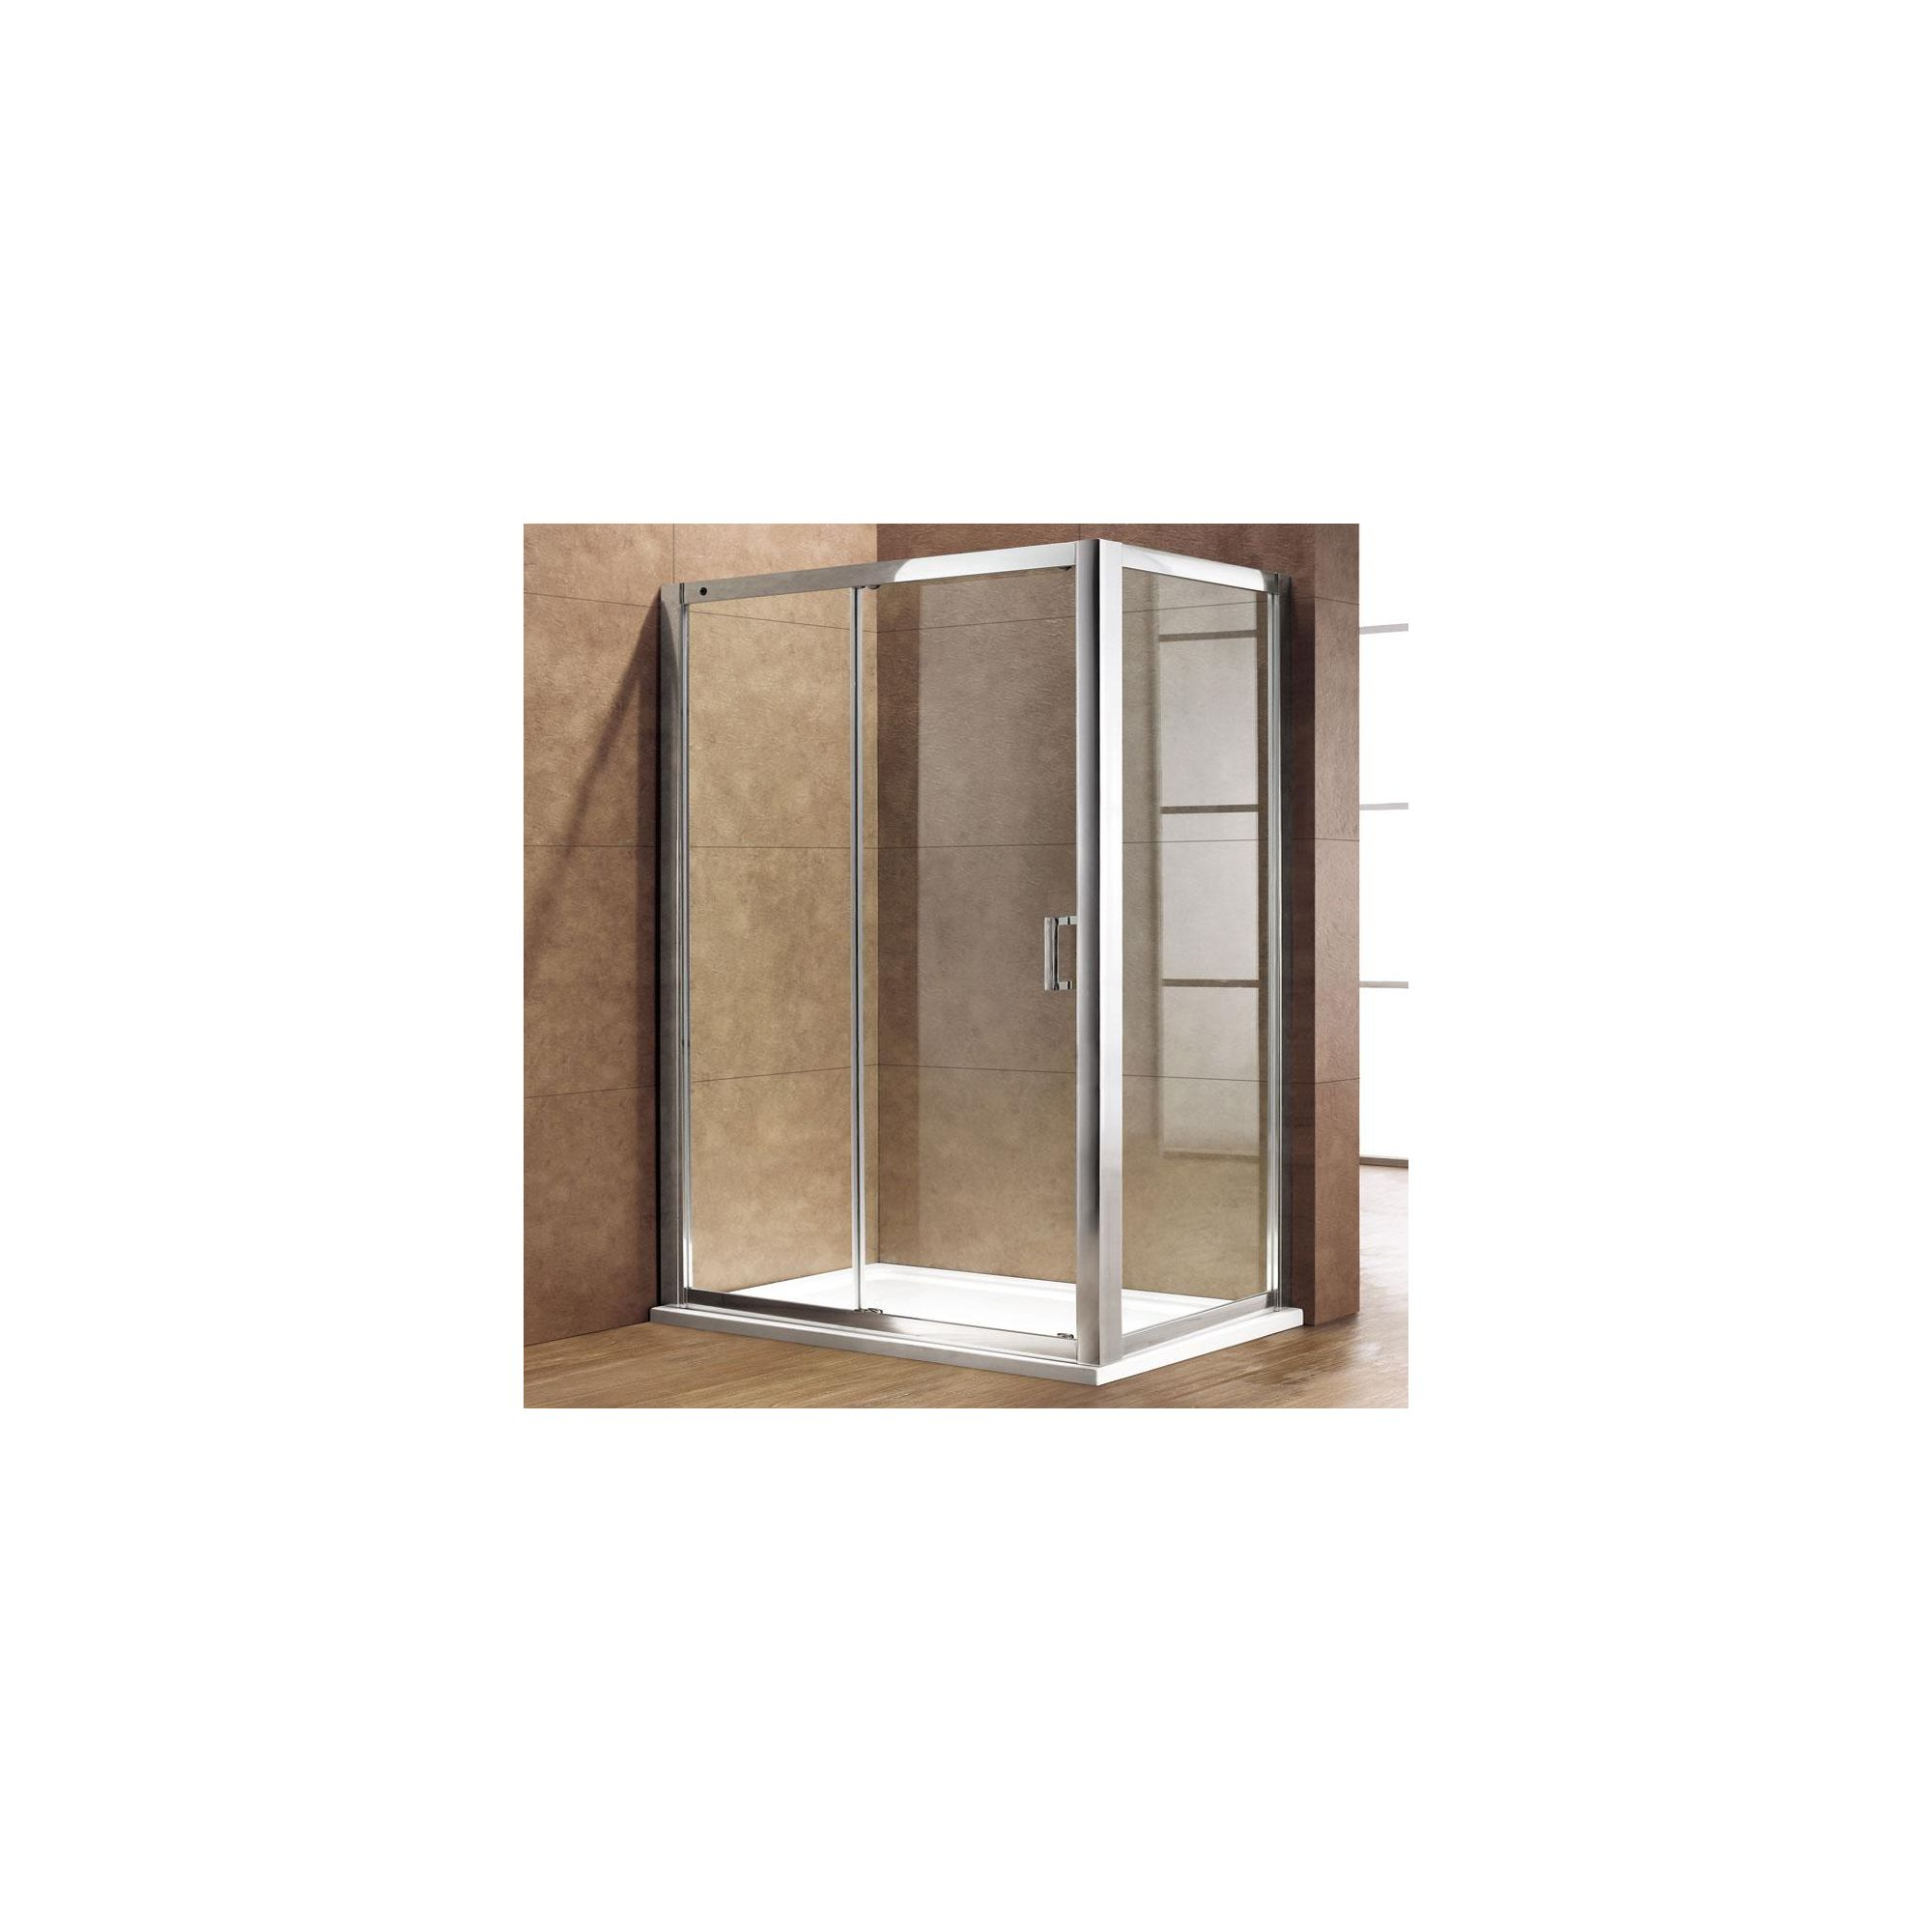 Duchy Premium Single Sliding Shower Door, 1600mm Wide, 8mm Glass at Tesco Direct